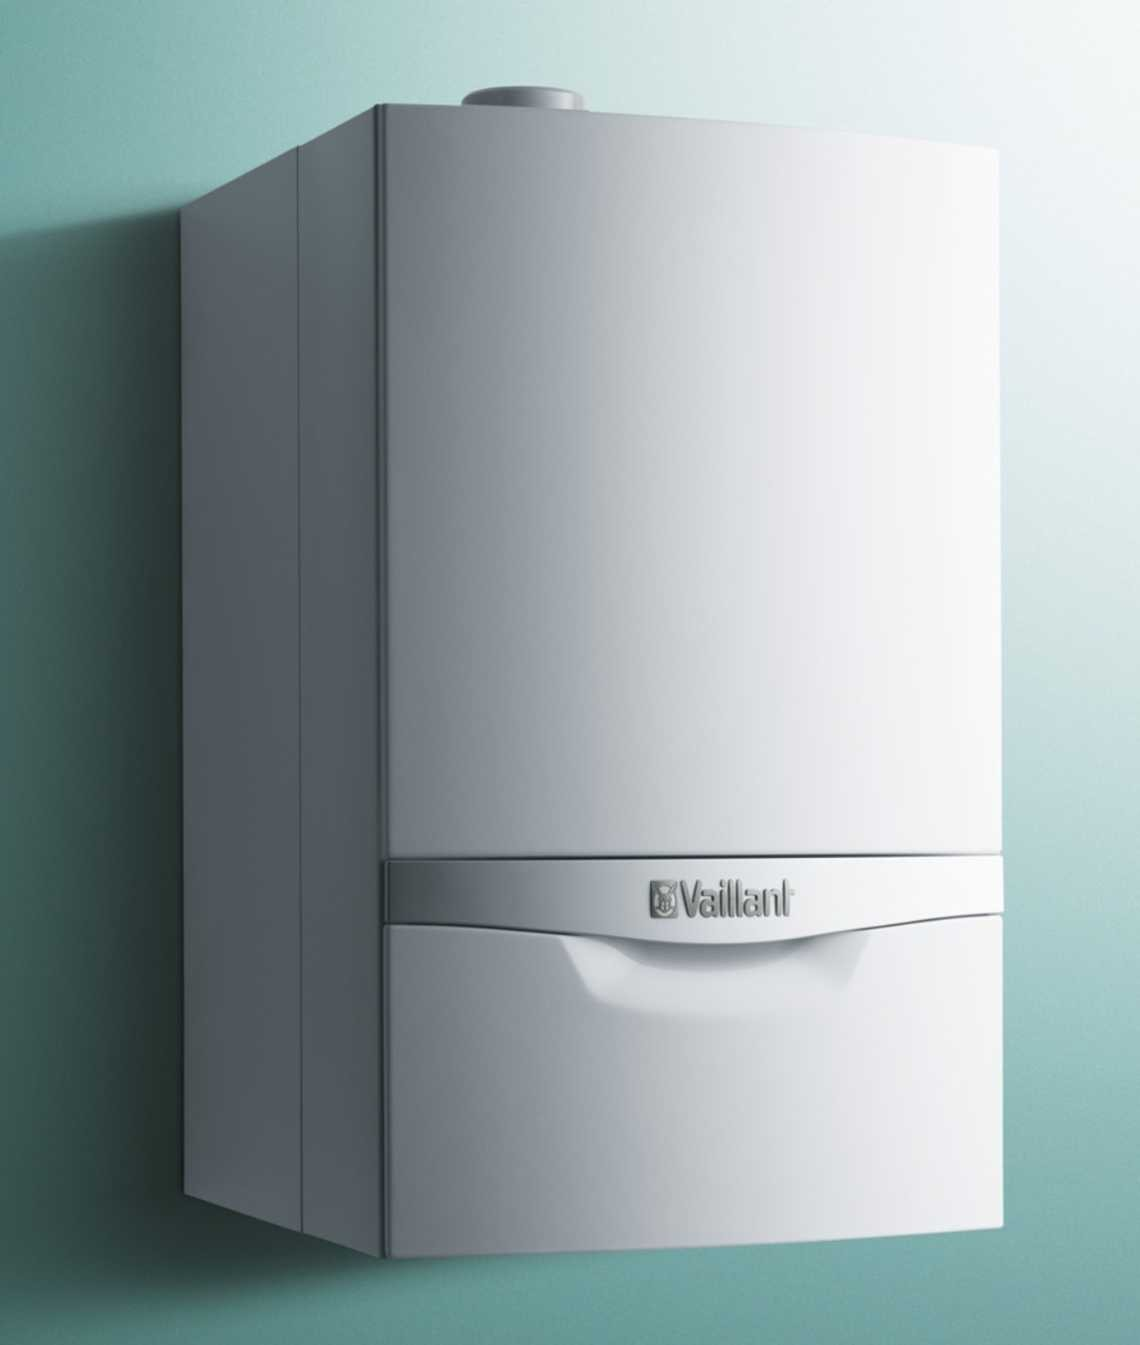 Газовий котел Vaillant ecoTEC Plus VU INT 386/5-5 H - Теплоцентр